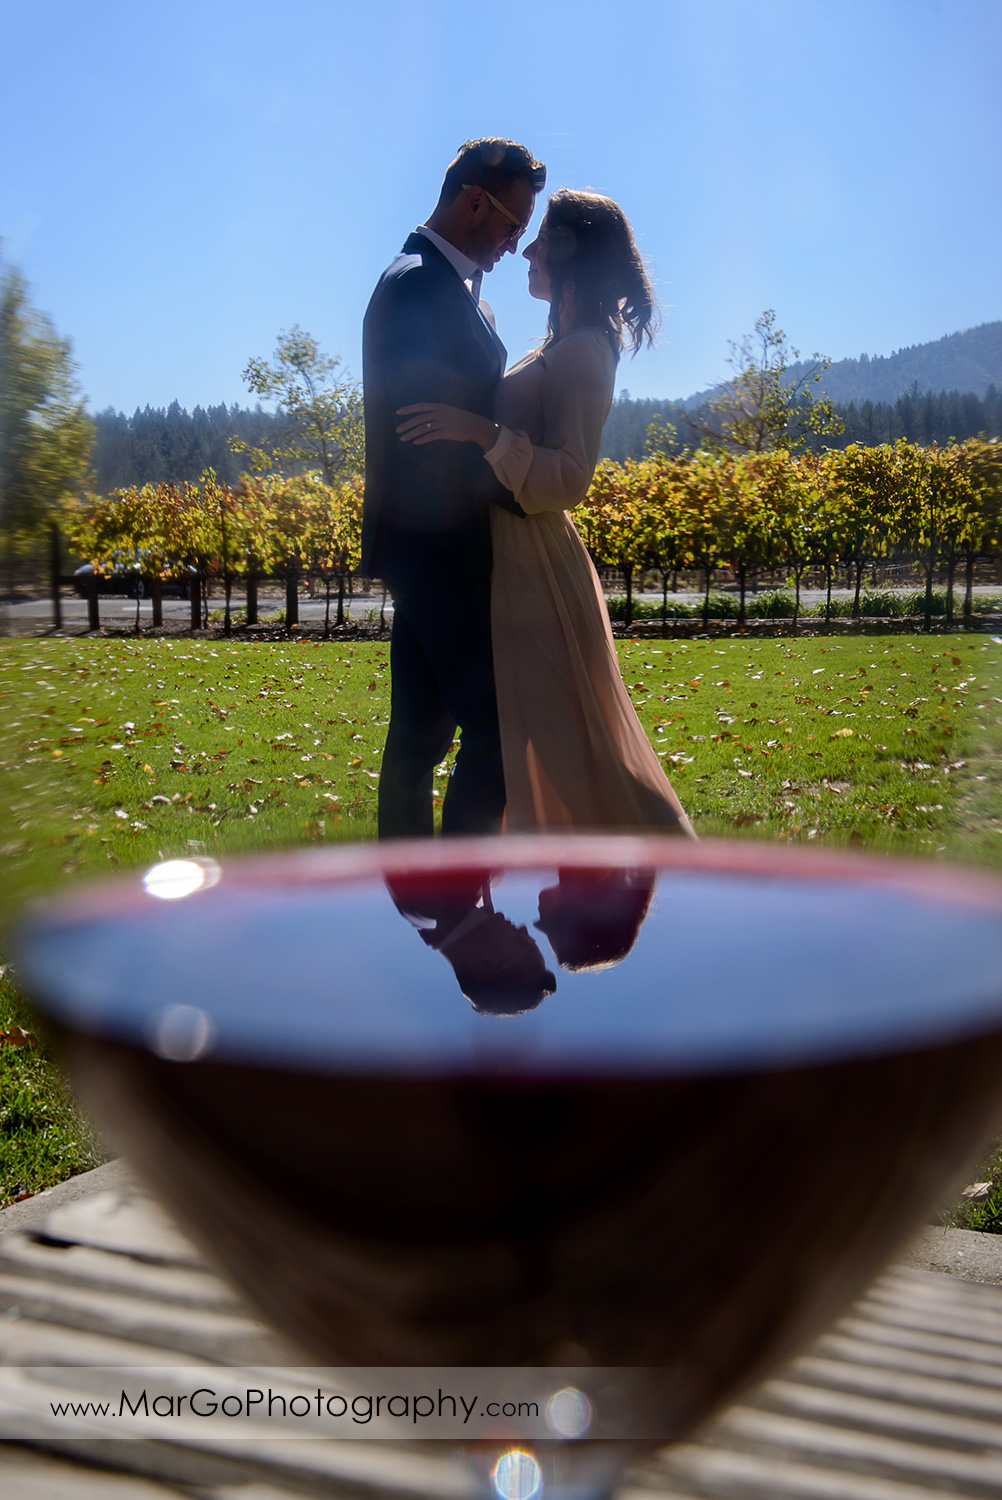 full body portrait of woman in pink dress and man in blue suit through the wine glass during Napa Valley engagement session at Castello di Amorosa in Calistoga